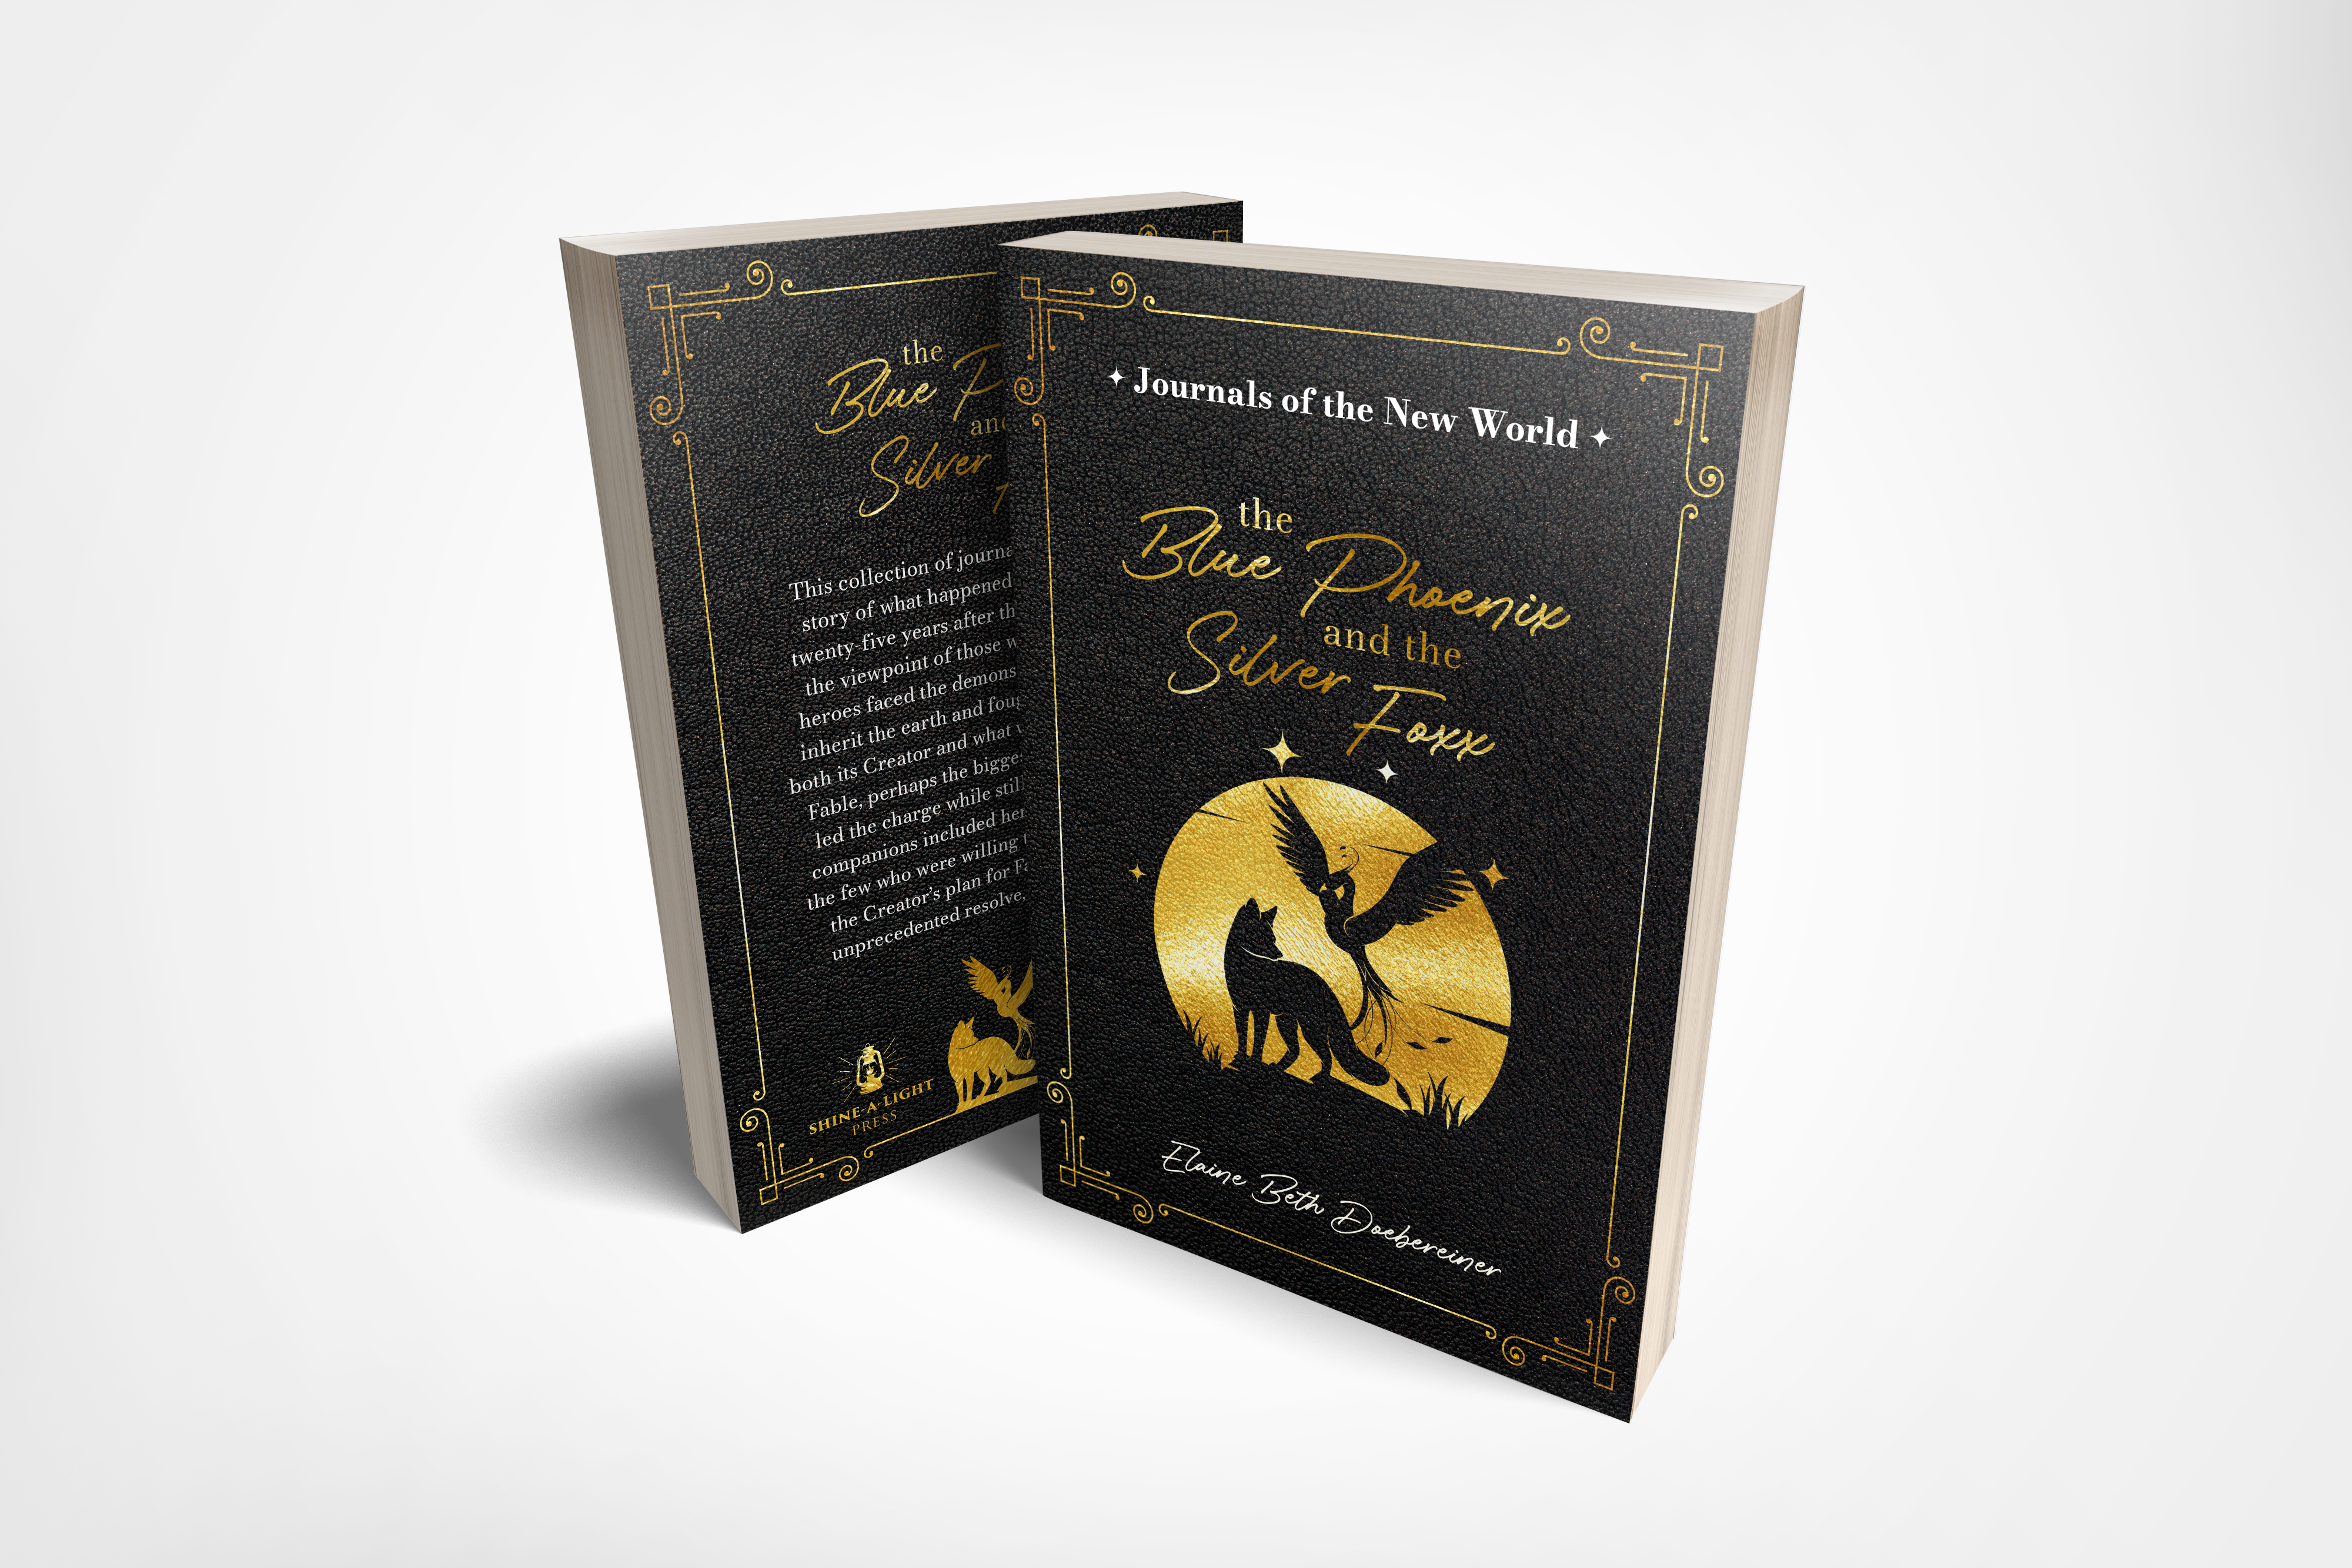 Journals of the New World - Collection 2: The Blue Phoenix and the Silver Foxx